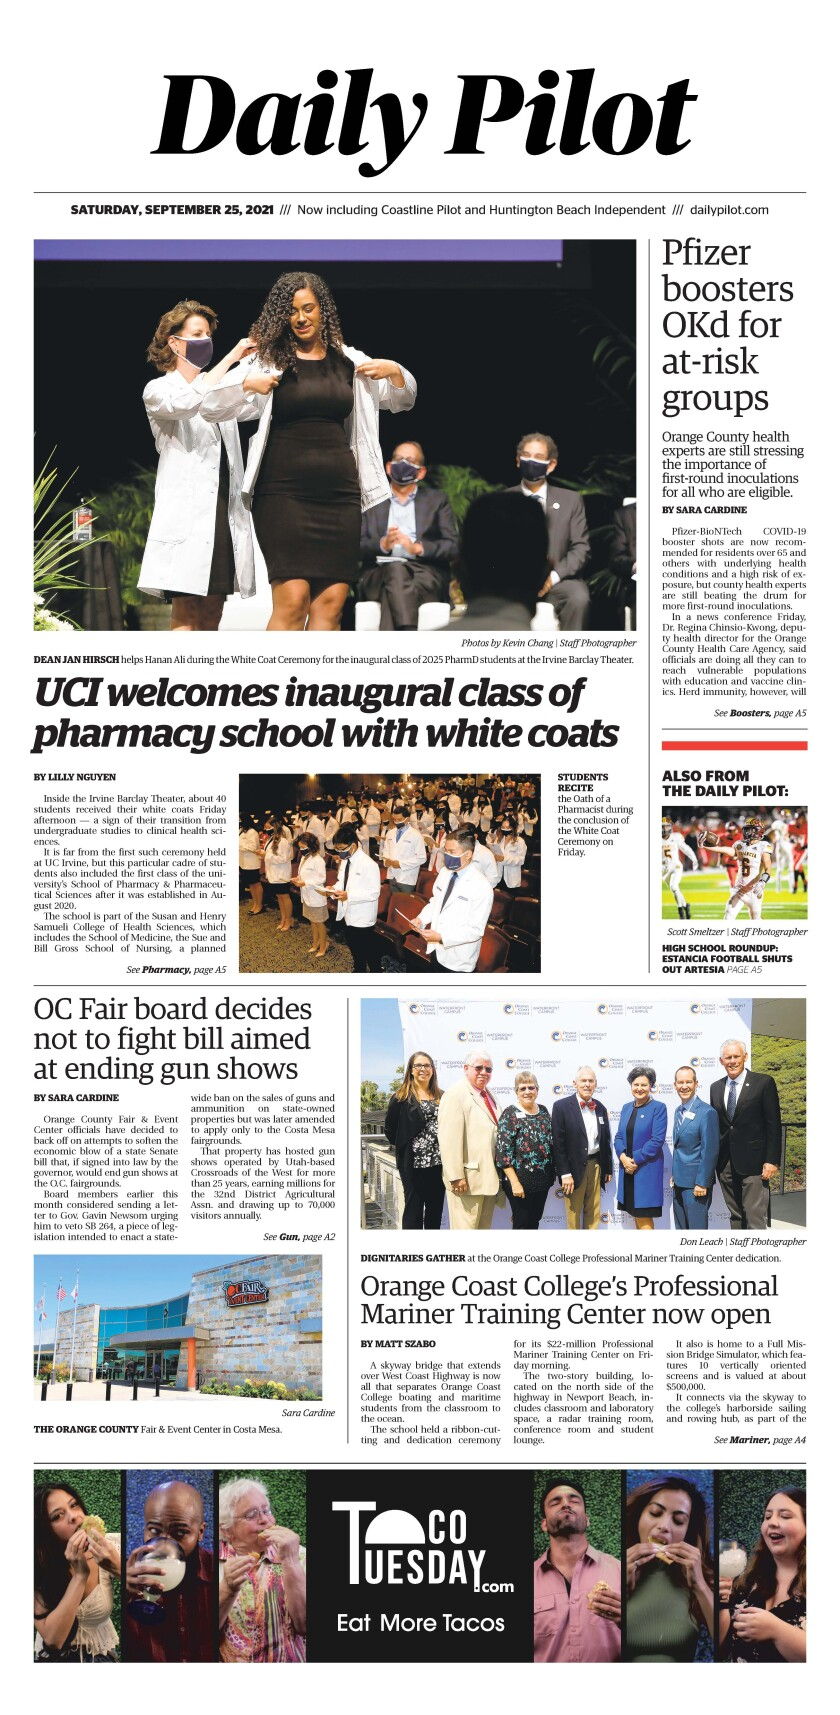 Front page of Daily Pilot e-newspaper for Saturday, Sept. 25, 2021.